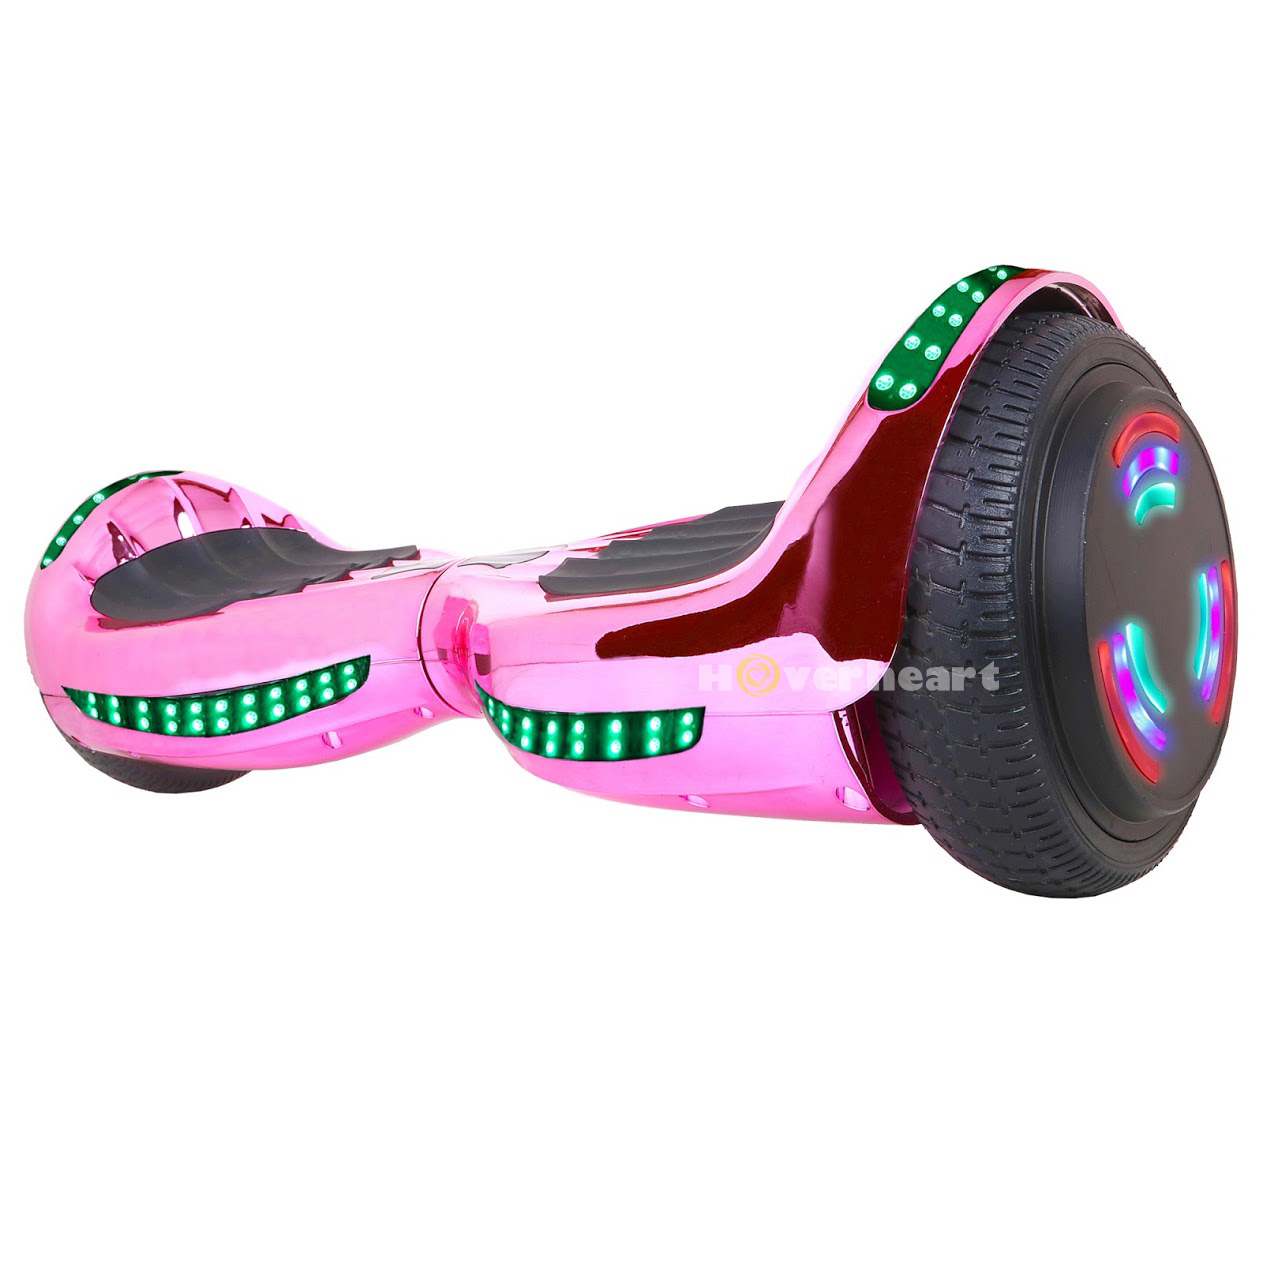 """Hoverboard Two-Wheel Self Balancing Electric Scooter 6.5"""" UL 2272 Certified, New Chrome Pink Coating with Bluetooth Speaker and LED Light"""